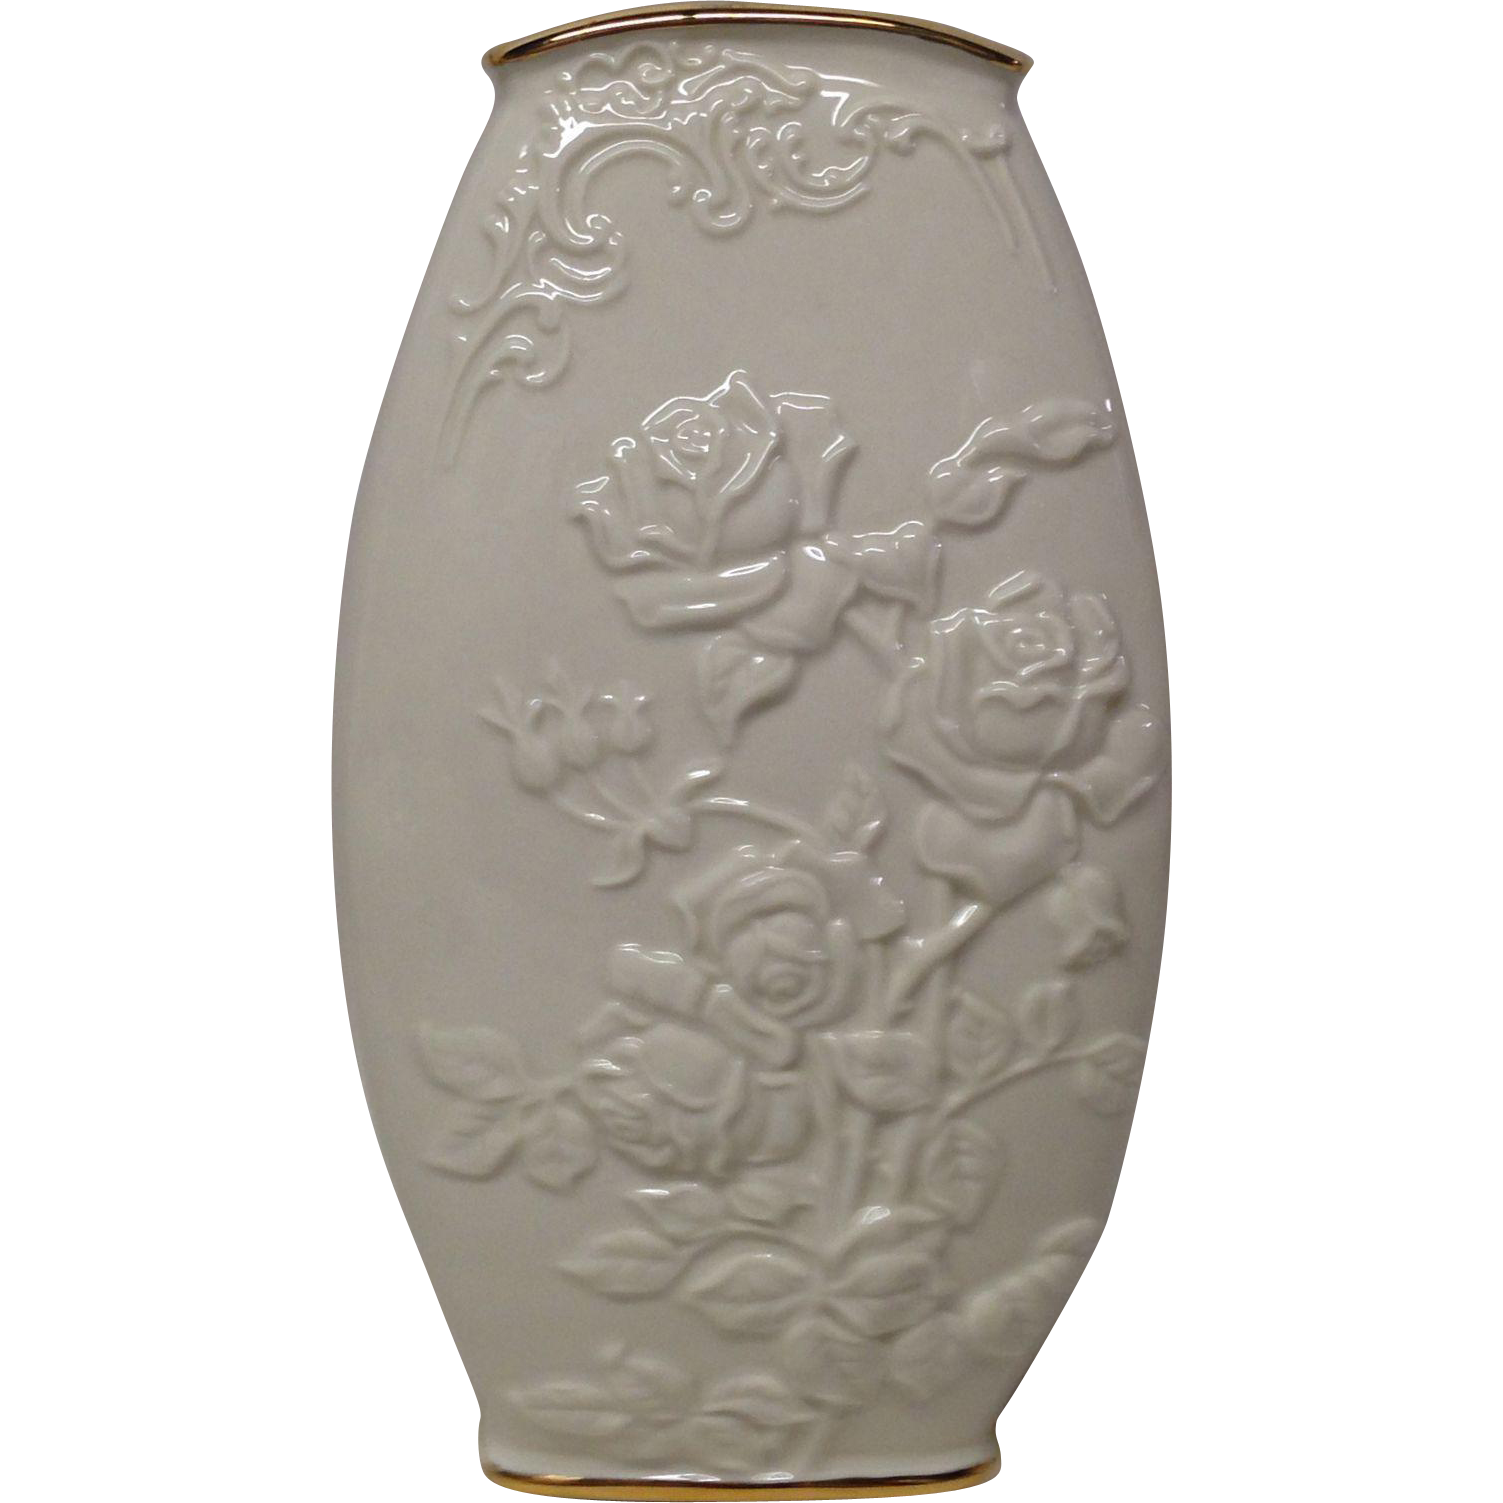 Lovely lenox vase with embossed roses and leaves grandview fine lovely lenox vase with embossed roses and leaves grandview fine tableware ruby lane reviewsmspy